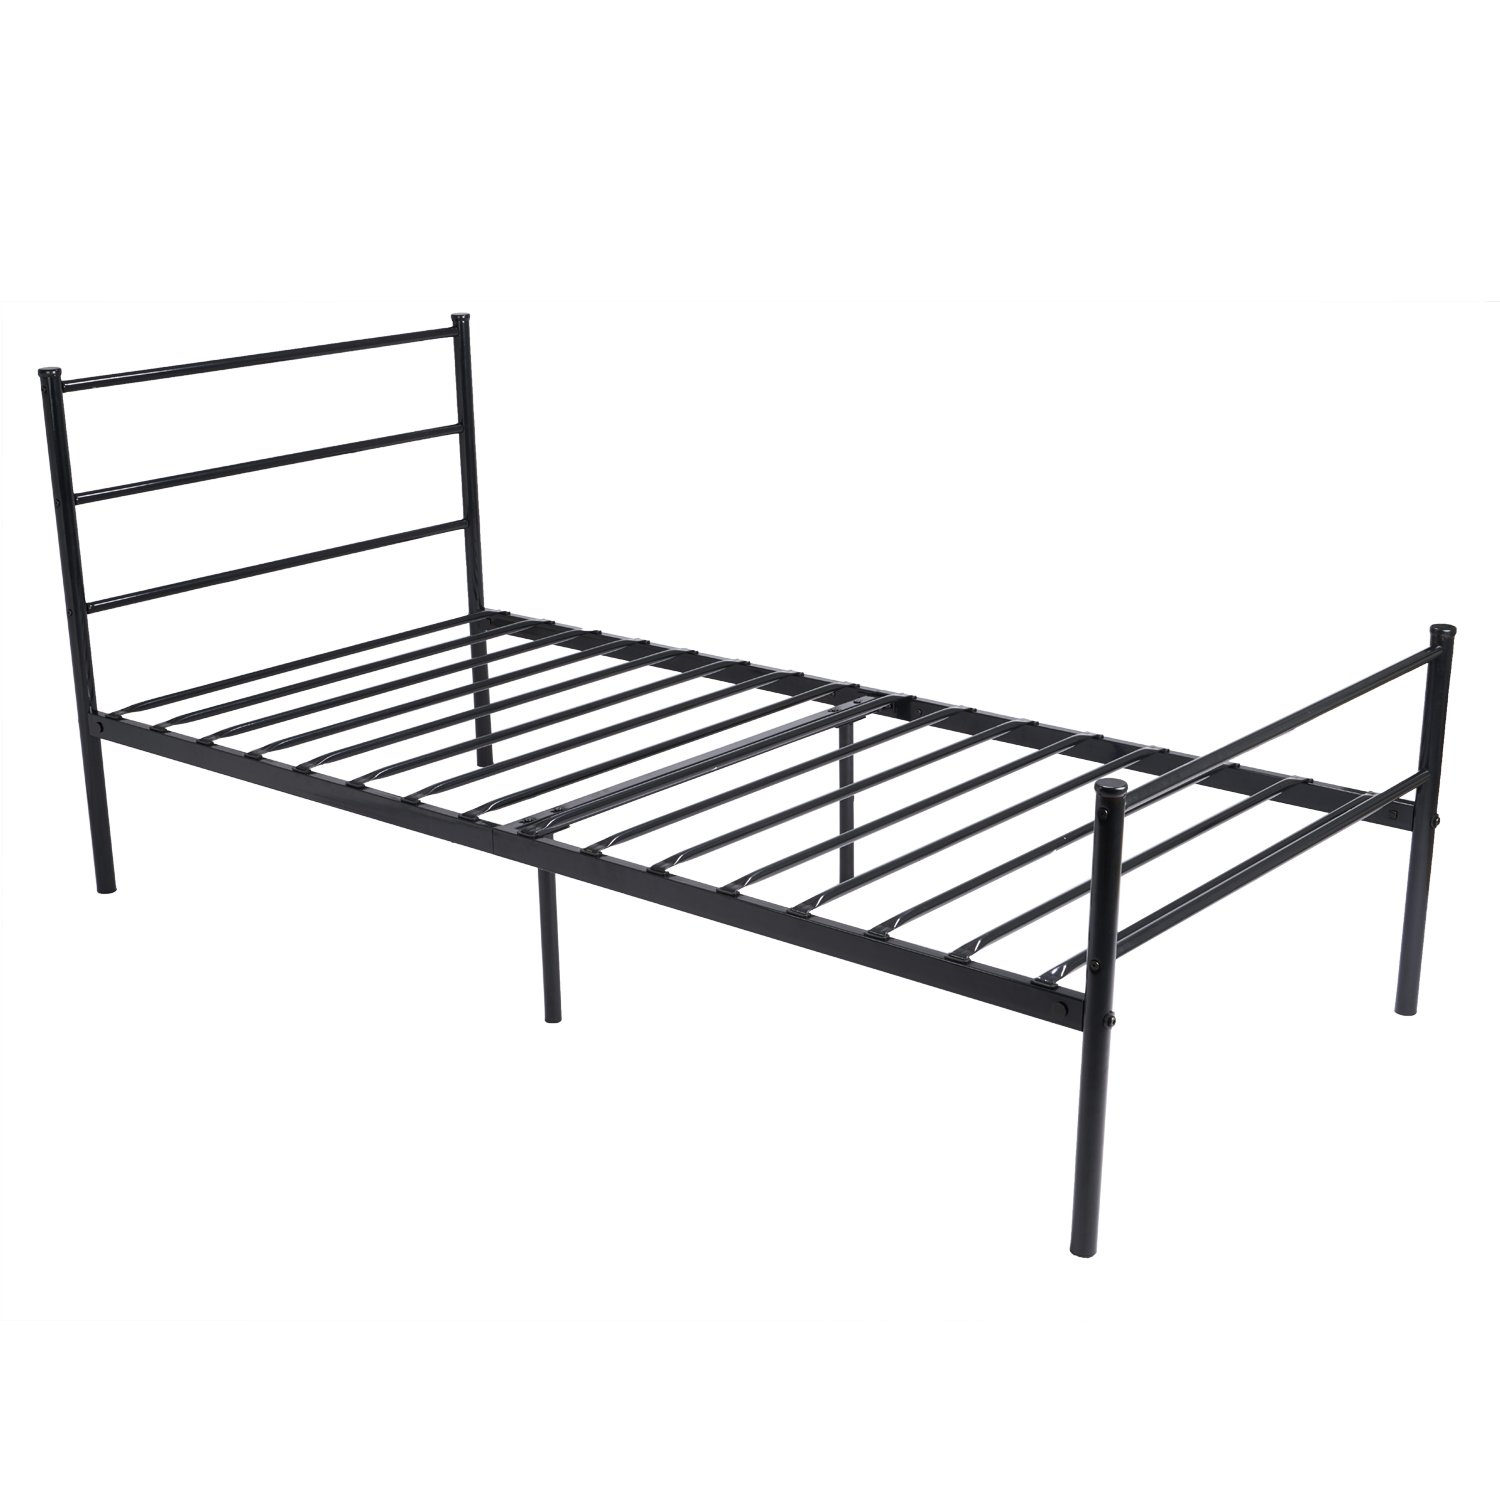 metal bed frame twin size greenforest two headboards 6 legs mattress foundation black platform bed frame box spring